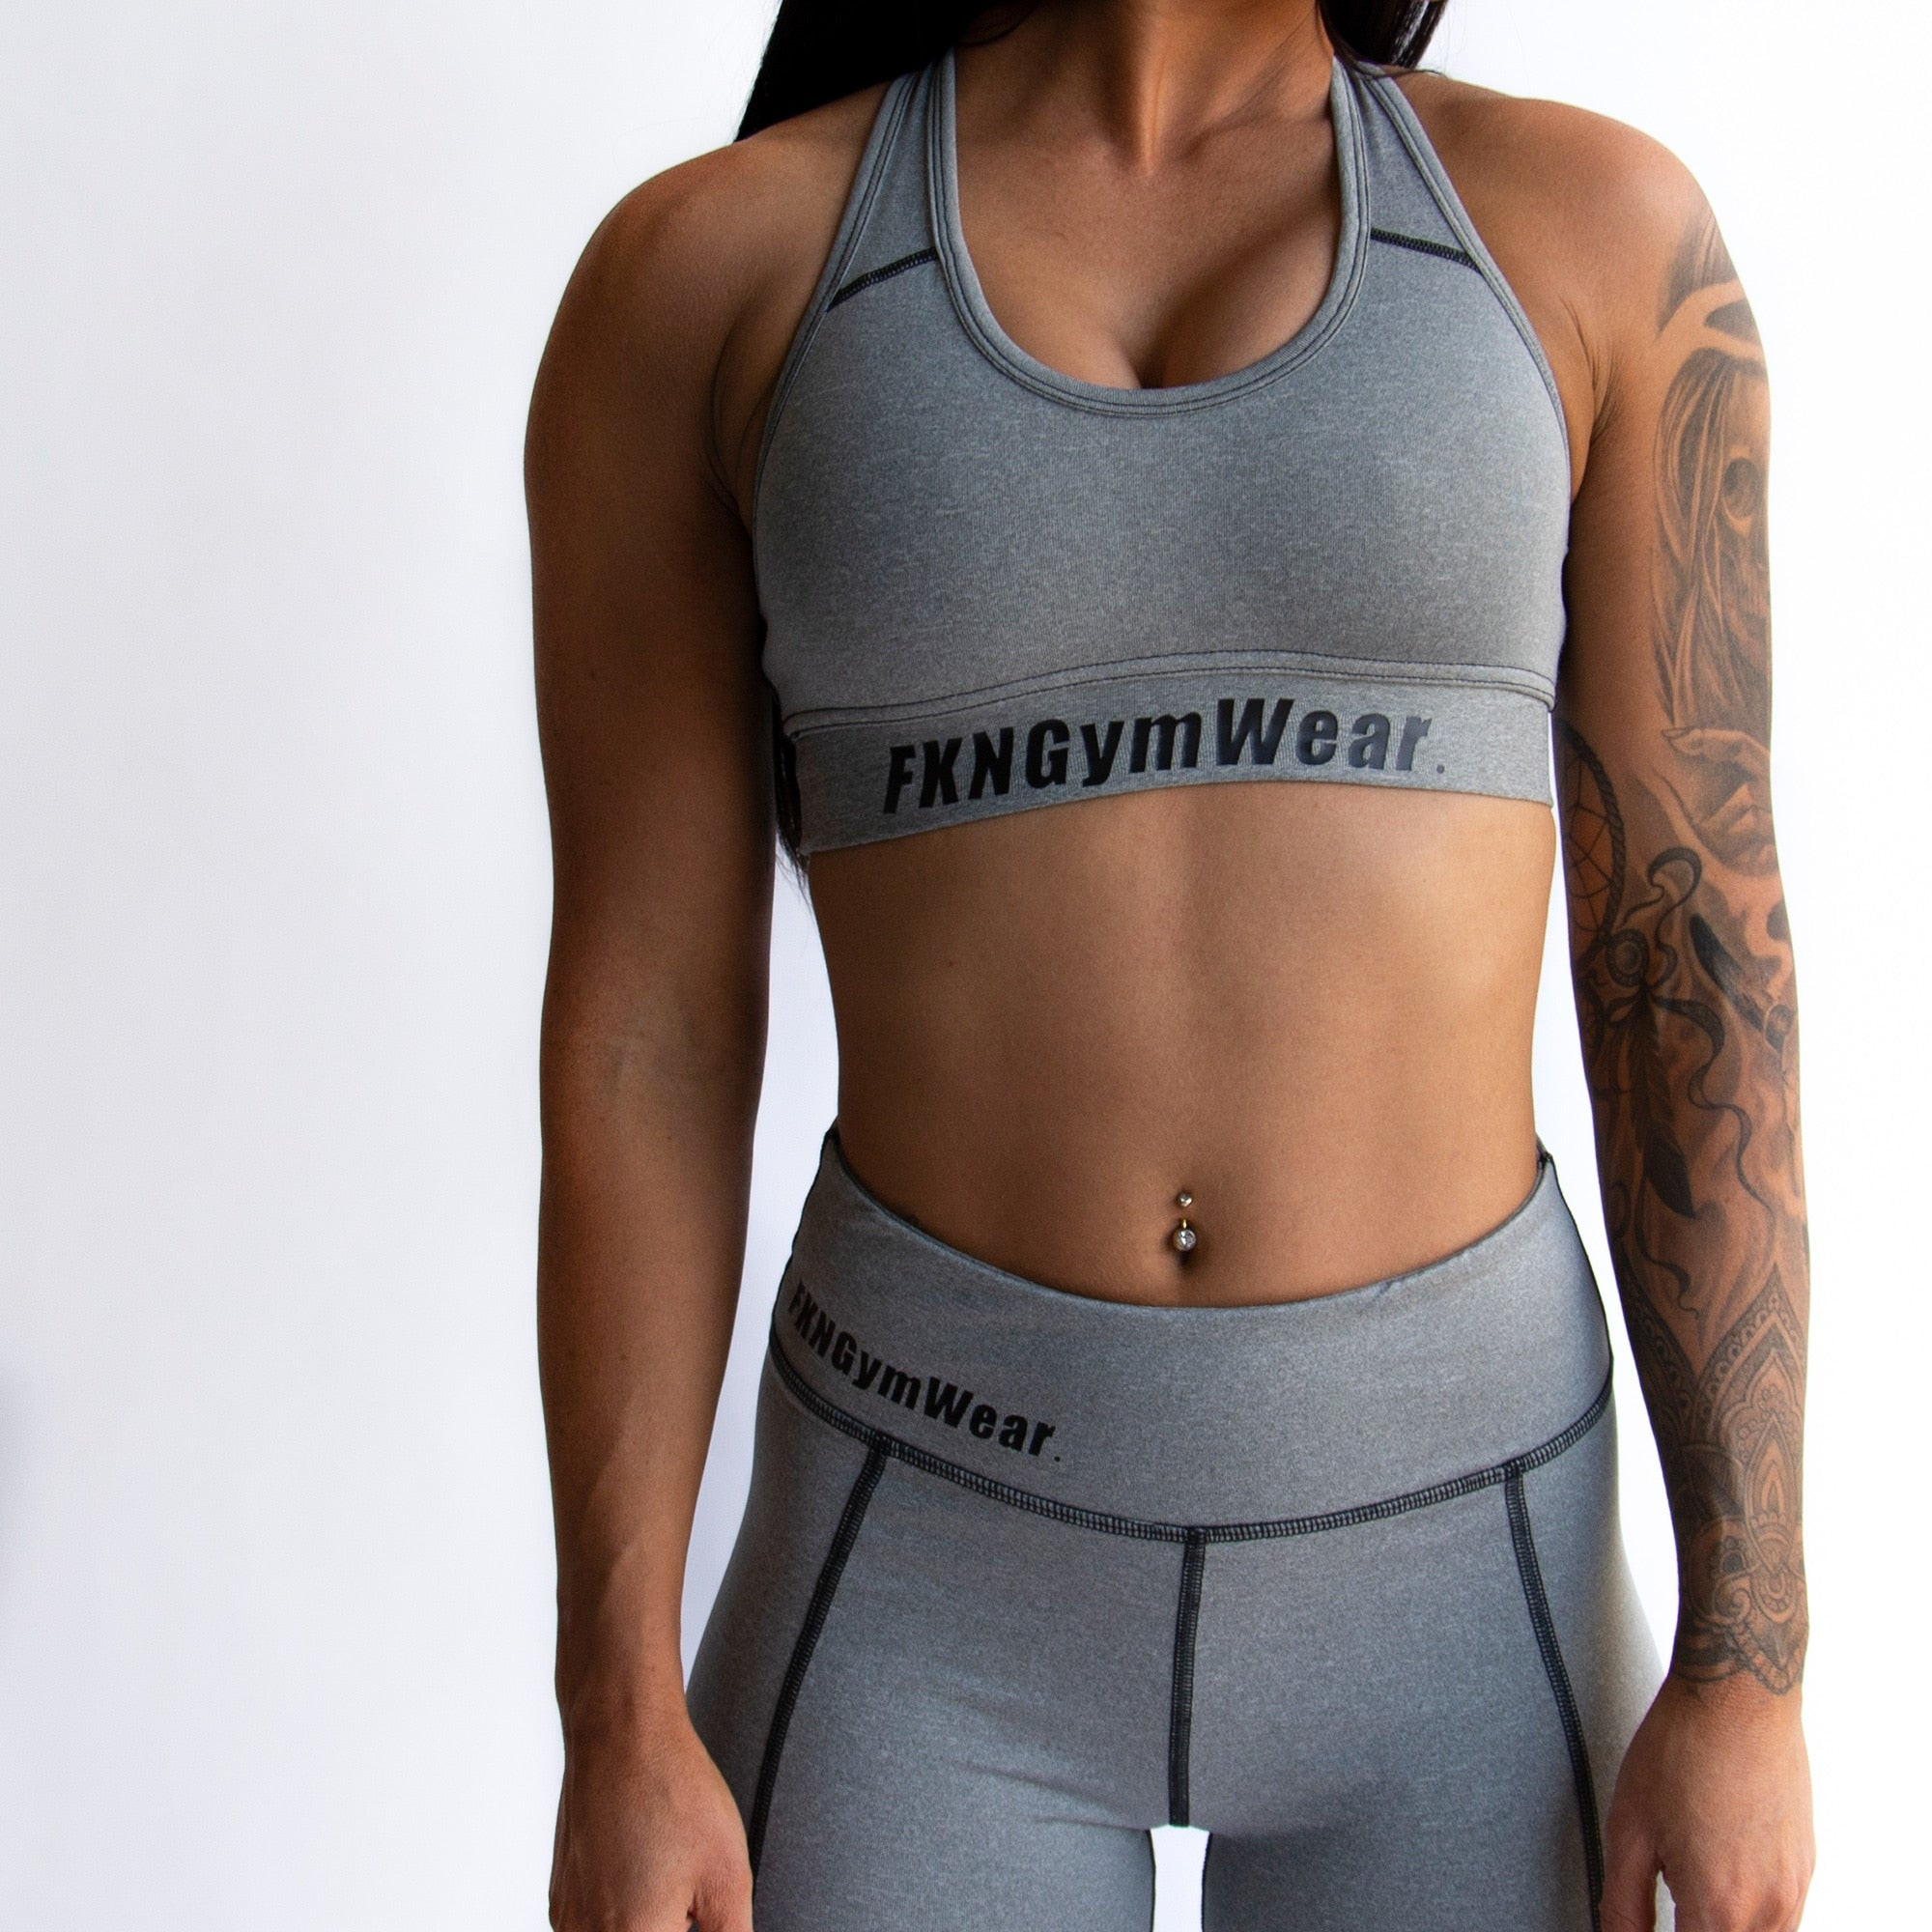 Buy Fitness Apparel and Gym Clothes - Men s Gym Wear – FKN Gym Wear USA f4de6bfd9